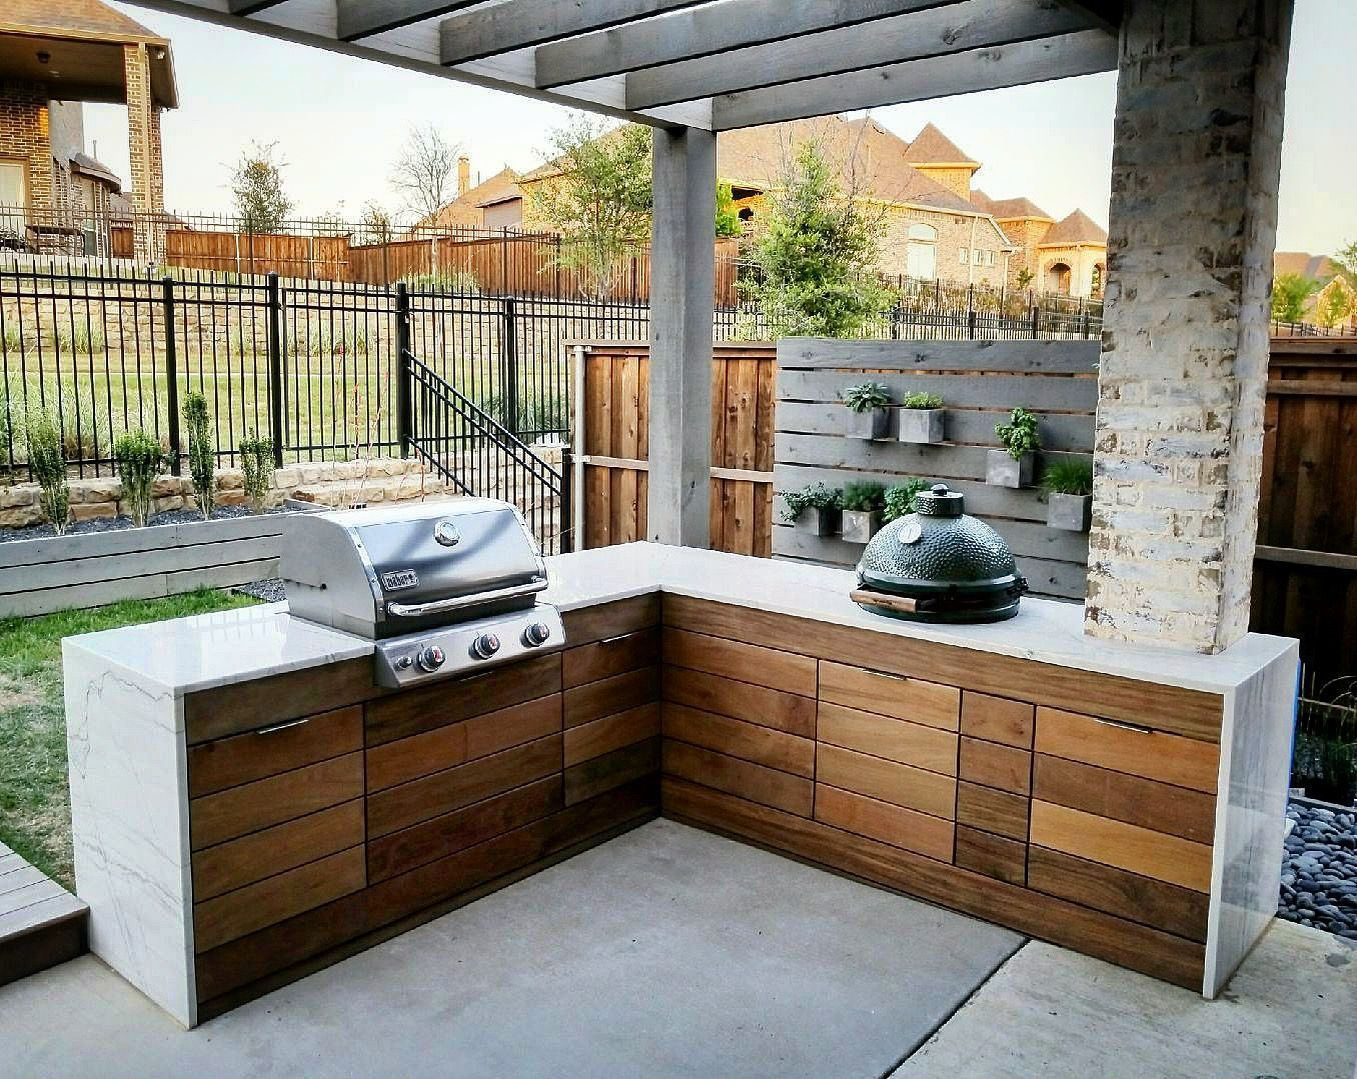 paradise outdoor kitchens for entertaining guests outdoor kitchen design outdoor kitchen on outdoor kitchen yard id=72362